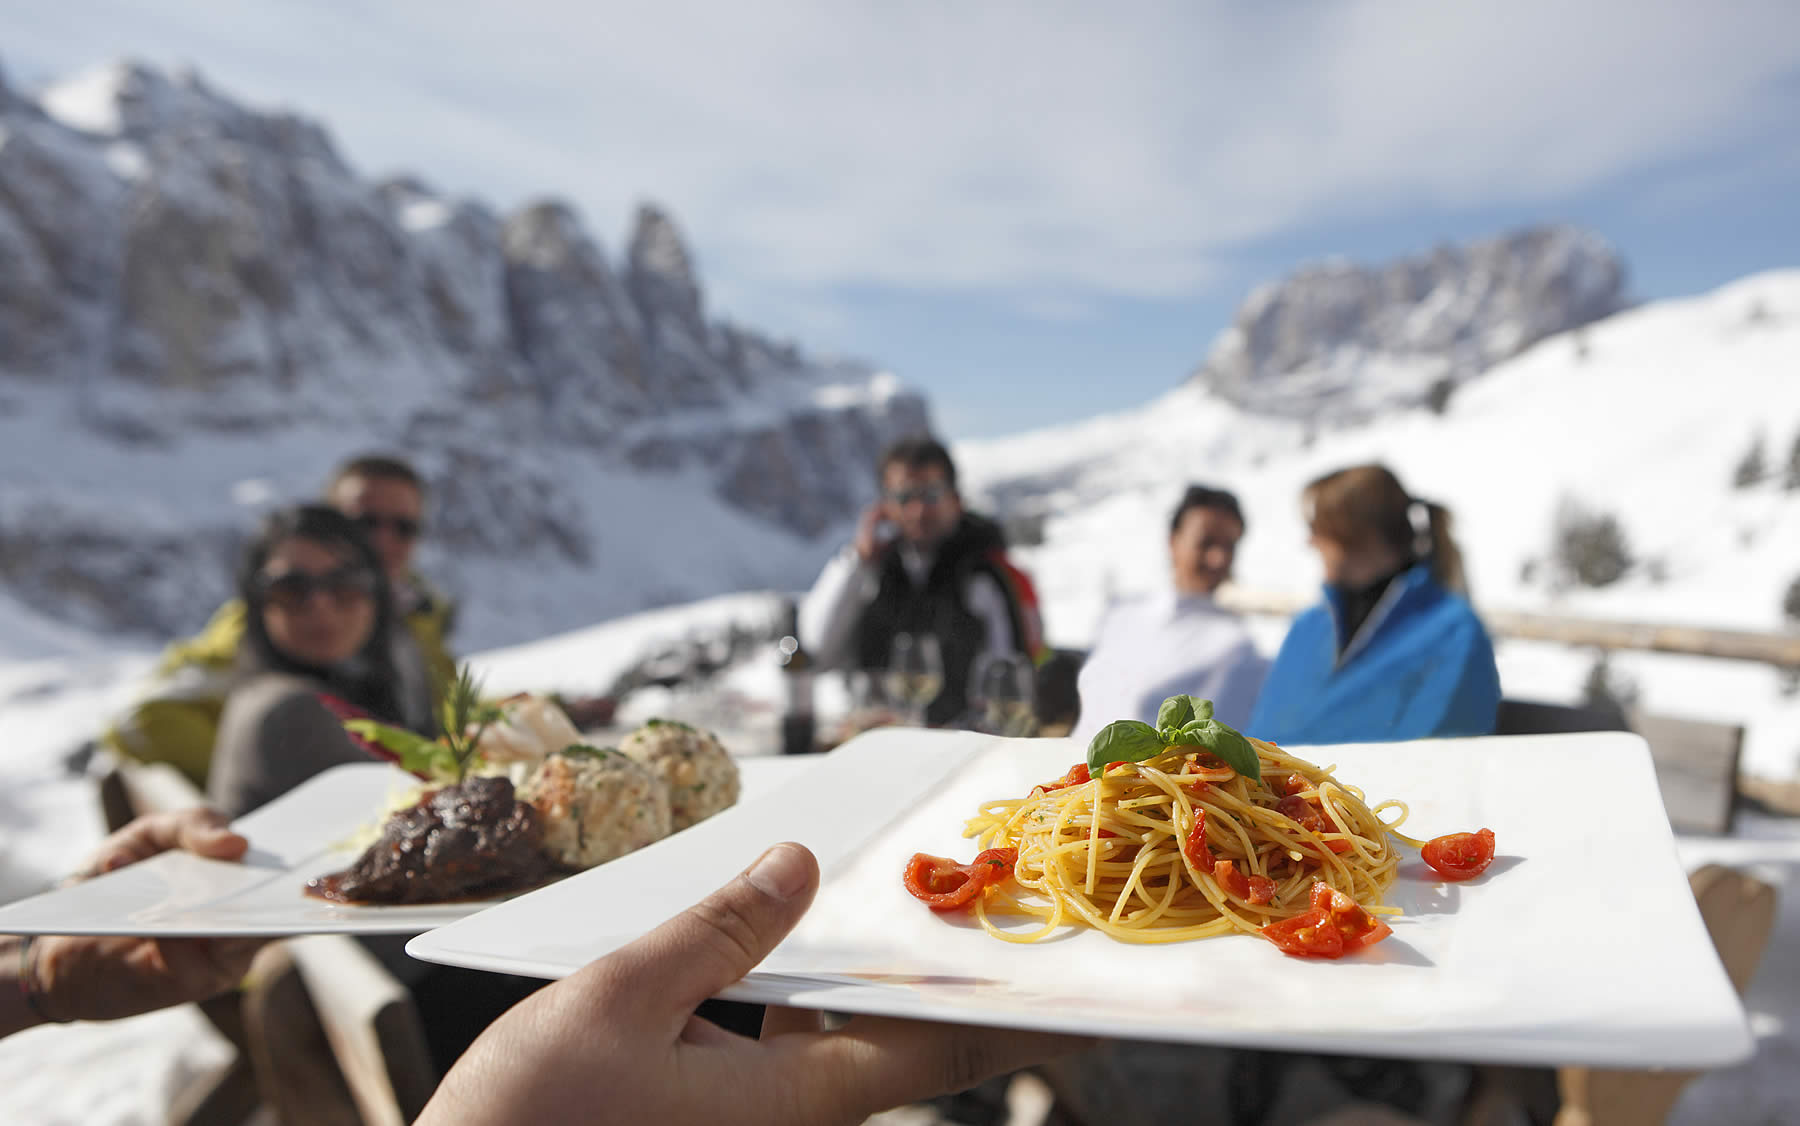 Ladin gastronomy in the huts of Alta Badia